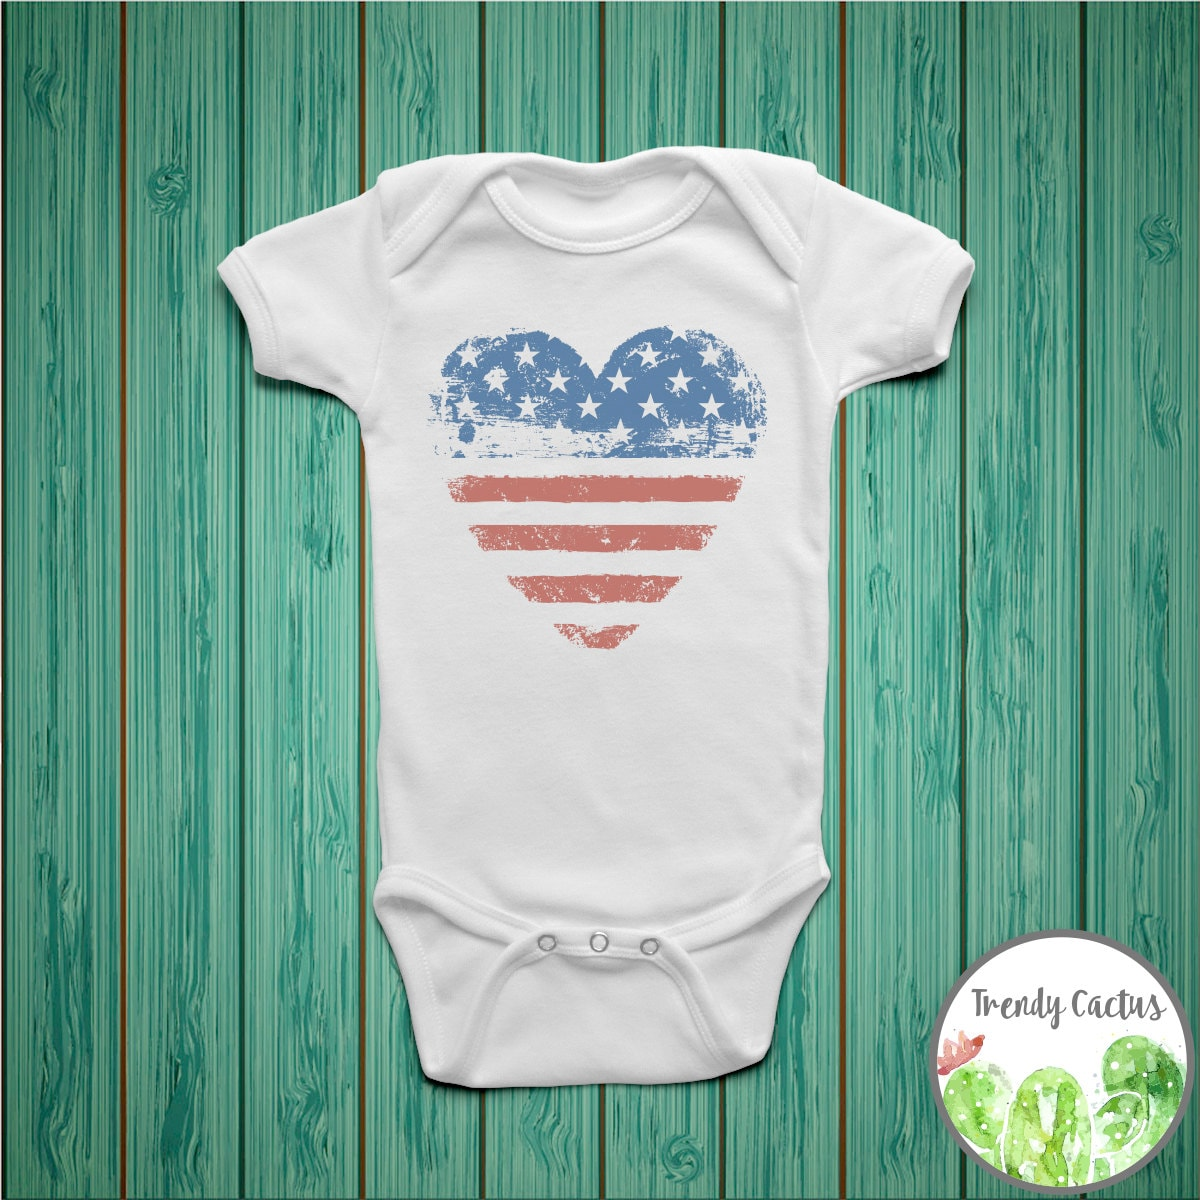 Purchase a baby onesie featuring the image of American Flag Bailey Co by Mark Courage. Available in sizes S - XL. Each onesie is printed on-demand, ships within 1 - 2 business days, and comes with a day money-back guarantee.